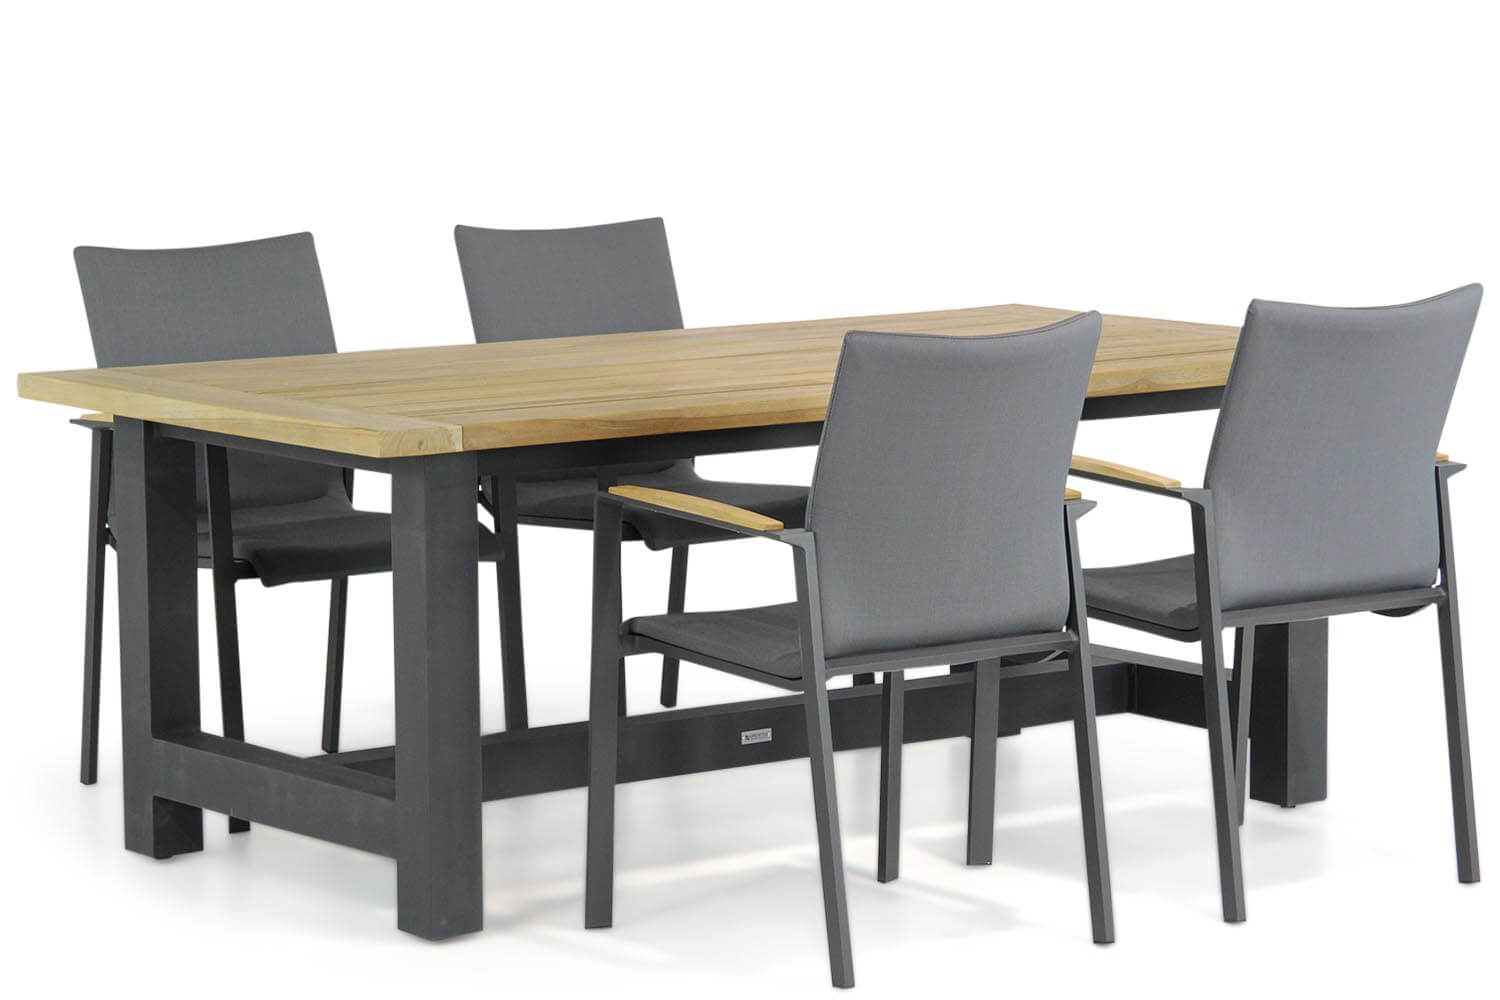 Lifestyle Brandon/San Francisco 200 cm dining tuinset 5-delig